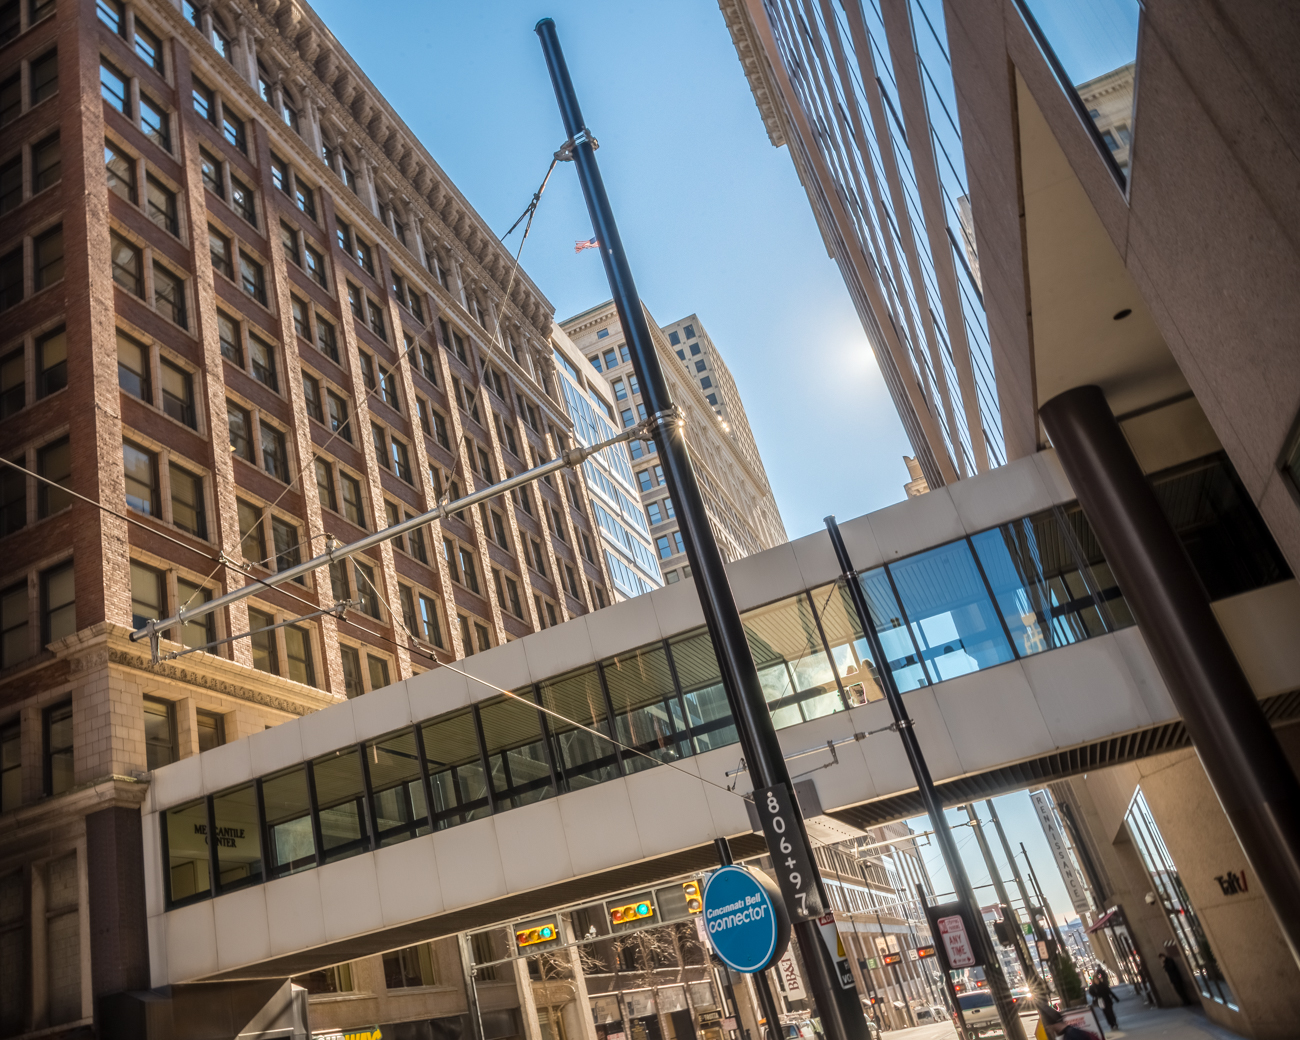 CONNECTS: US Bank Tower with Mercantile Library building / CROSSES: Walnut Street / STATUS: Public // Image: Phil Armstrong, Cincinnati Refined // Published: 1.9.17